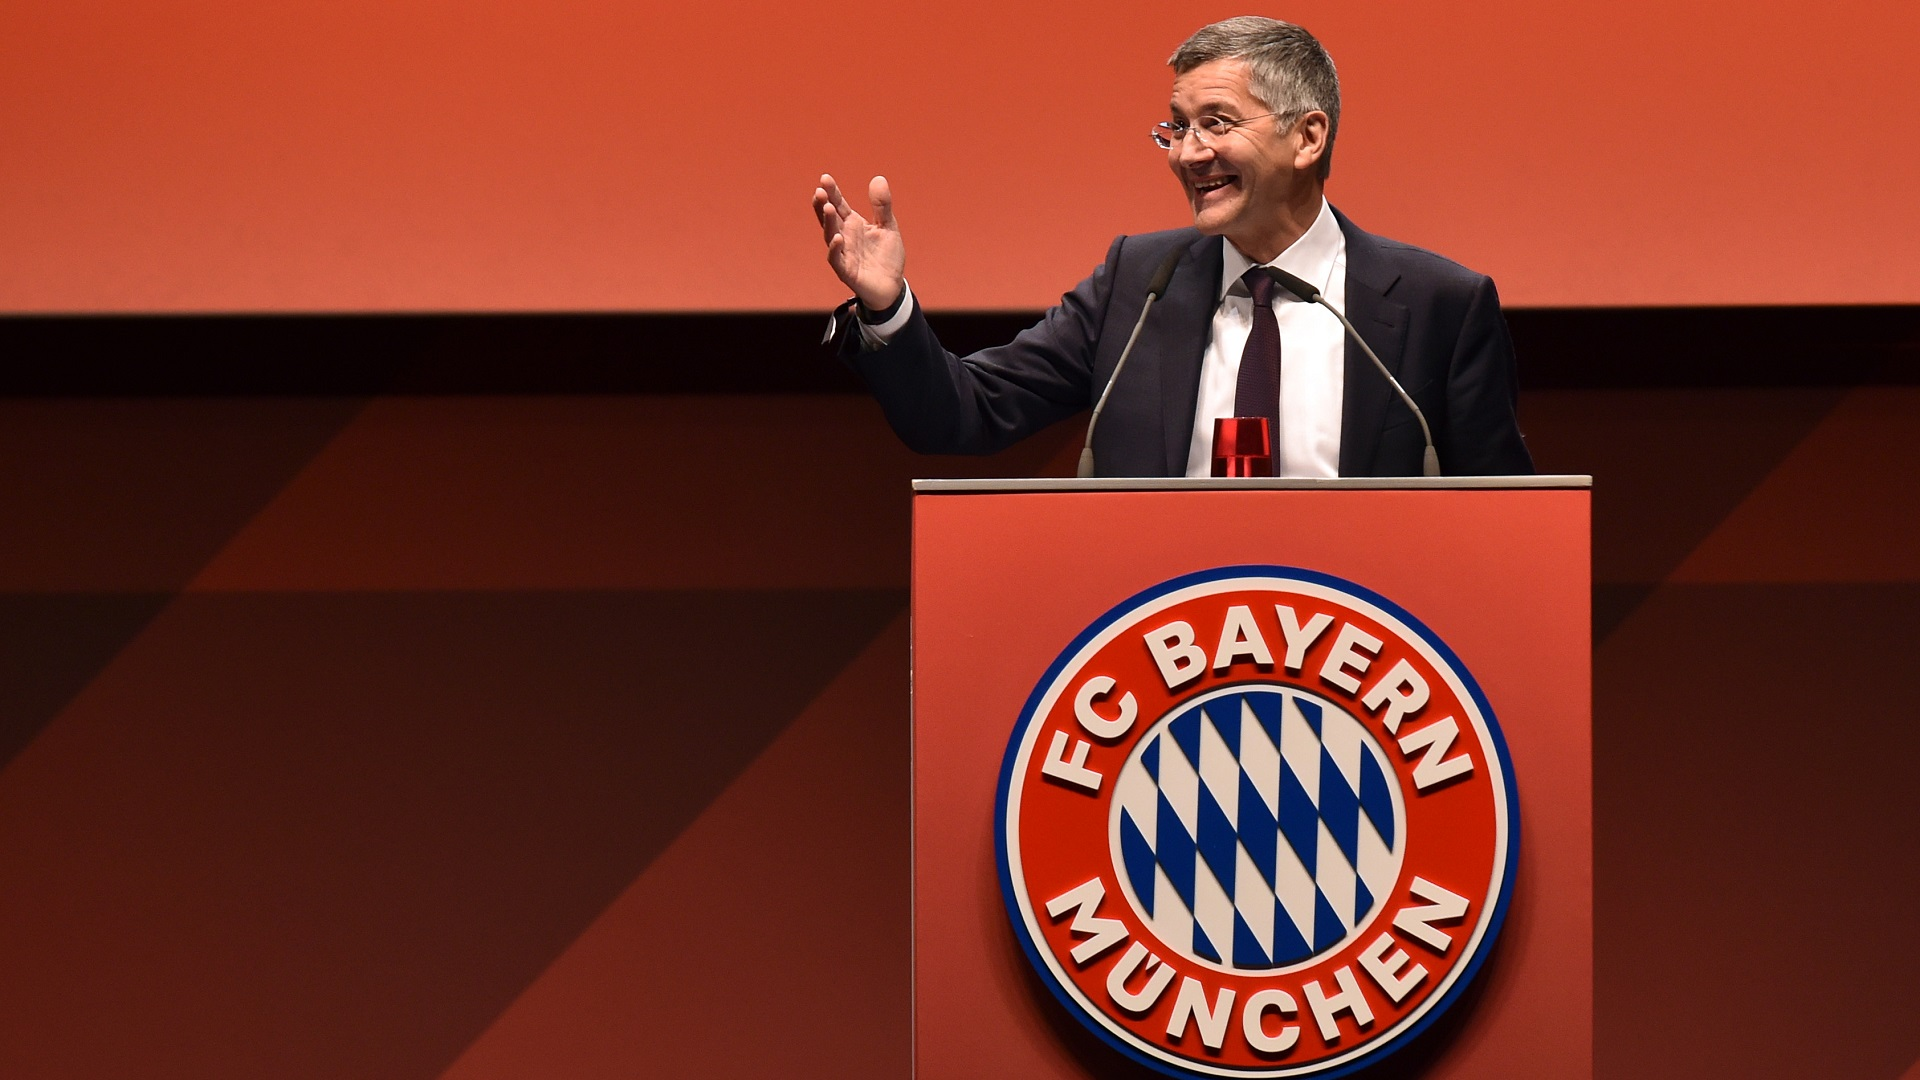 Hainer replaces Hoeness as Bayern president